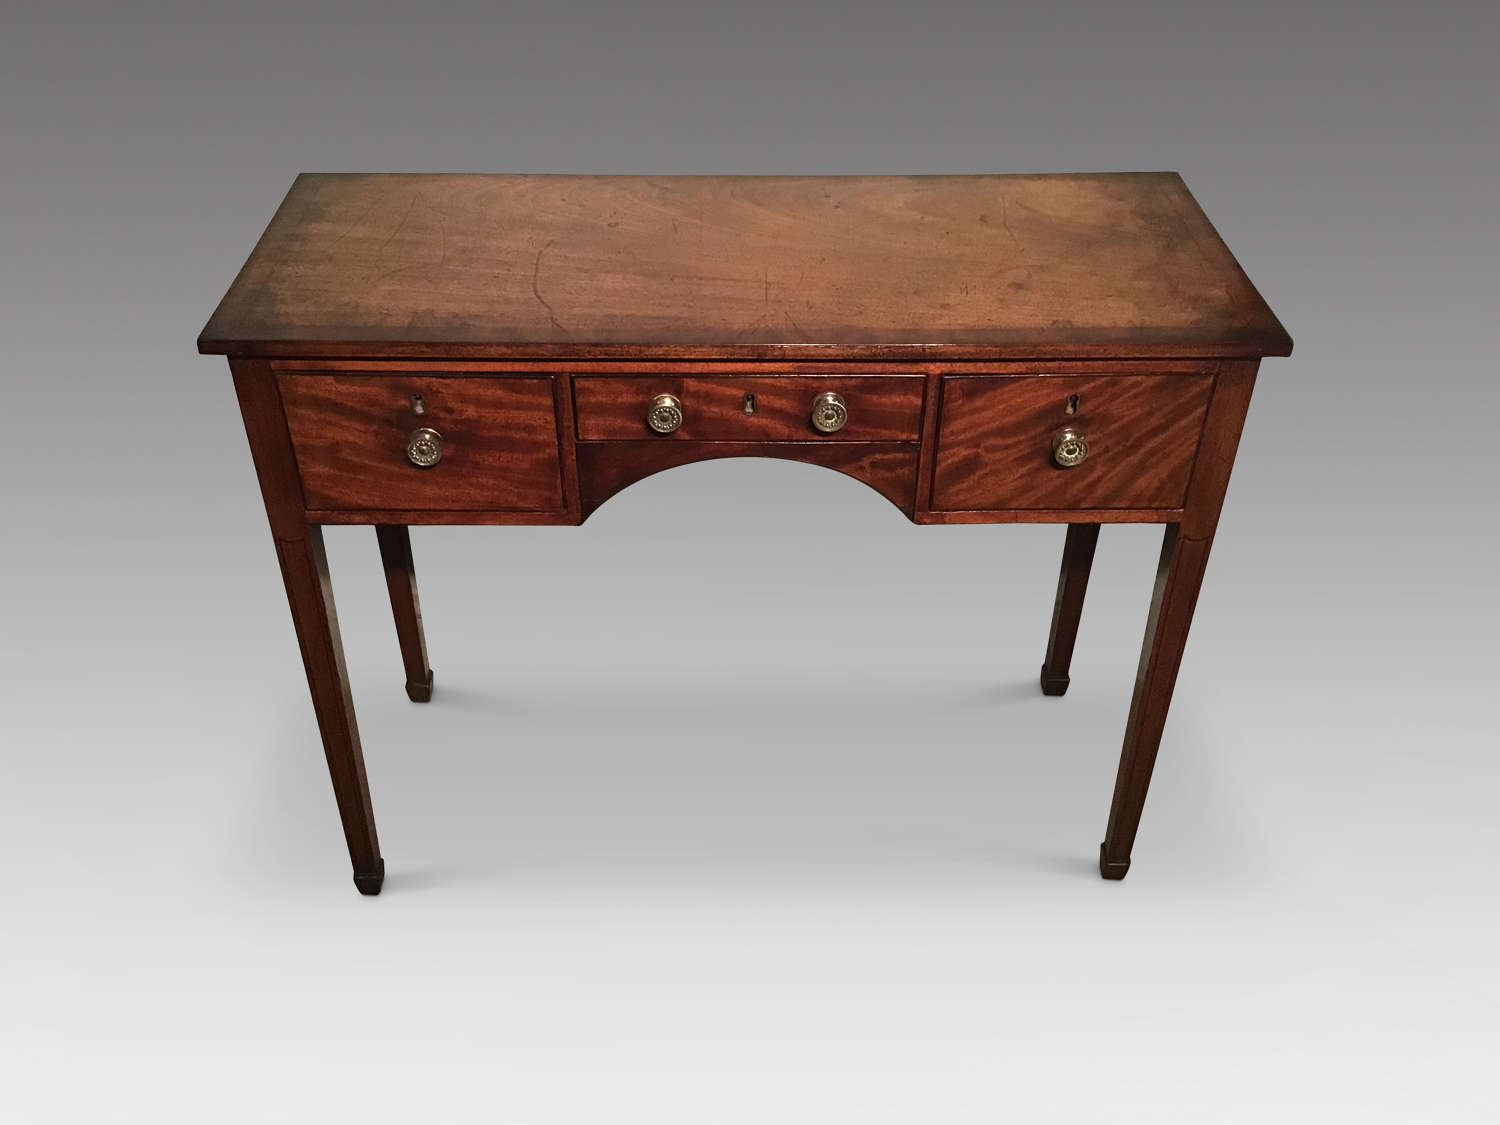 Antique mahogany kneehole table.